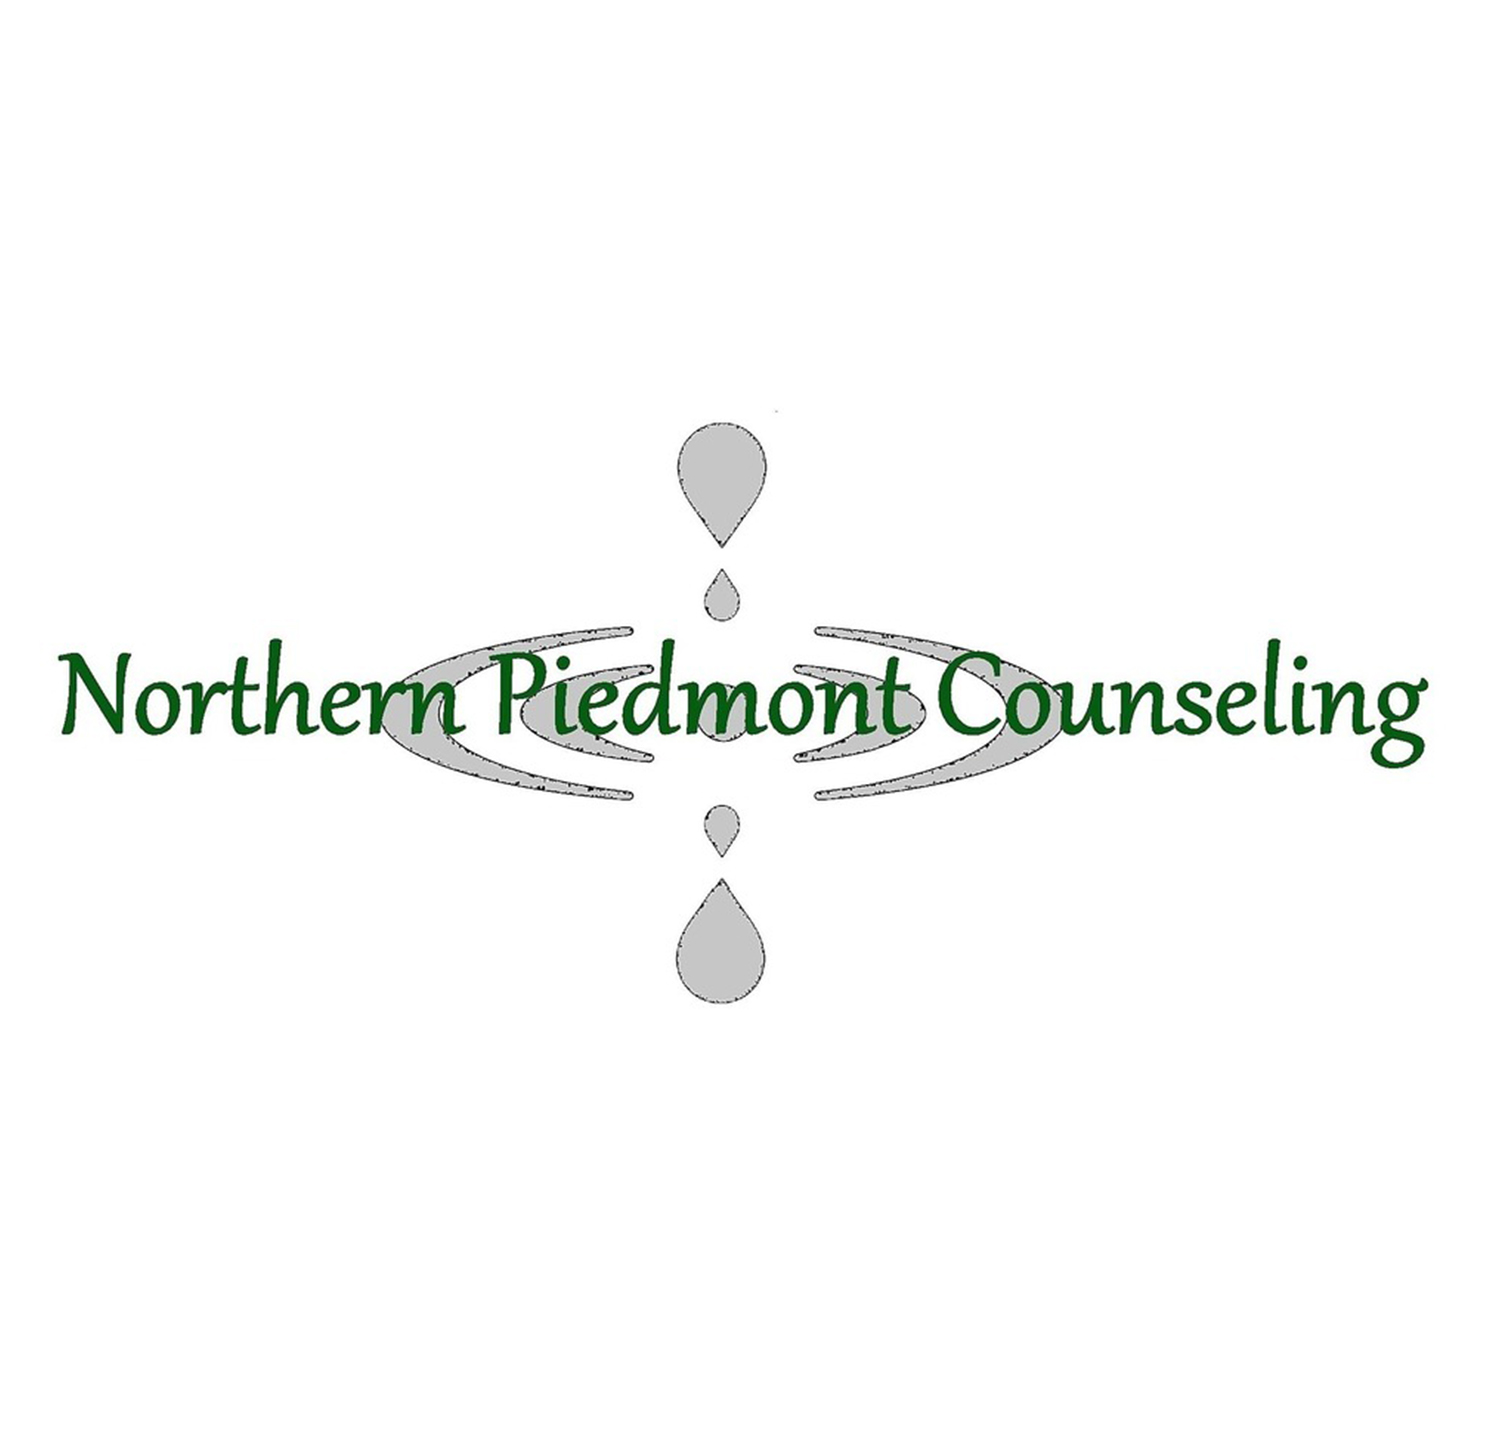 NorthernPiedmont-logo-1